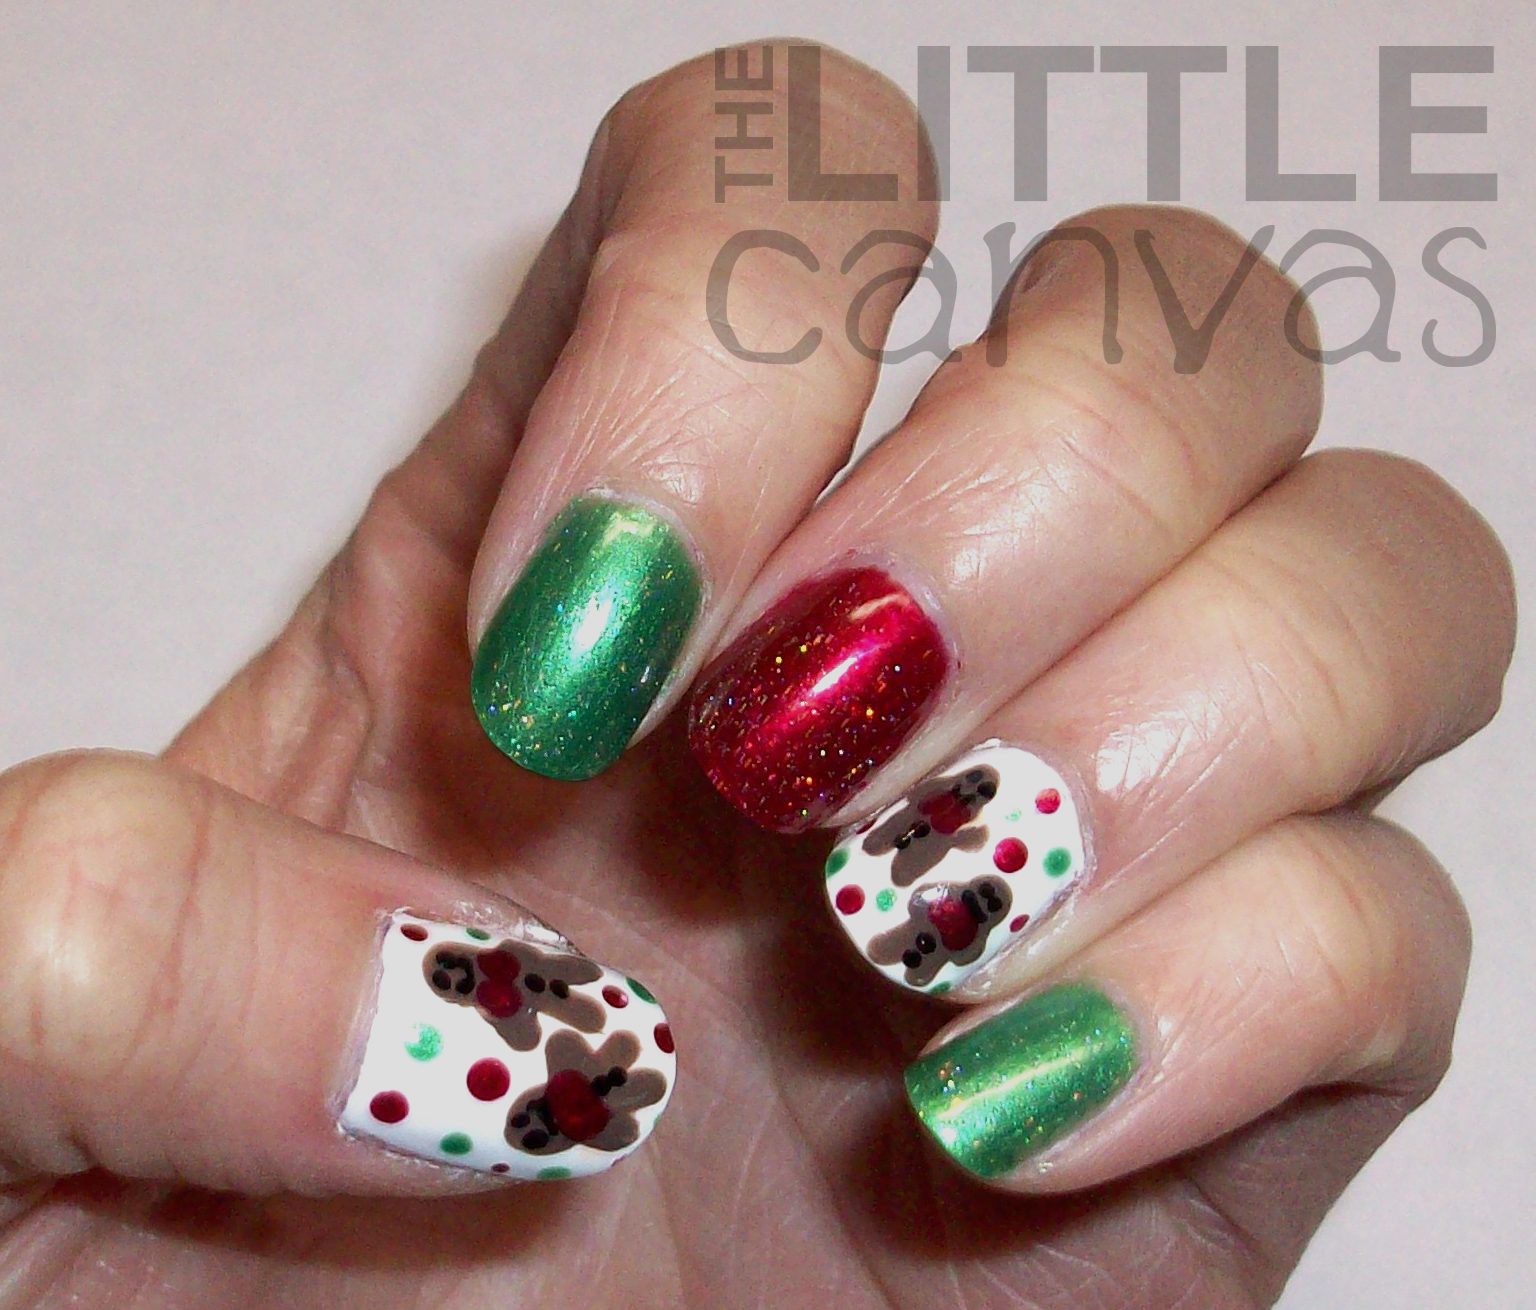 Gingerbread men nail art the little canvas gingerbread men nail art prinsesfo Image collections